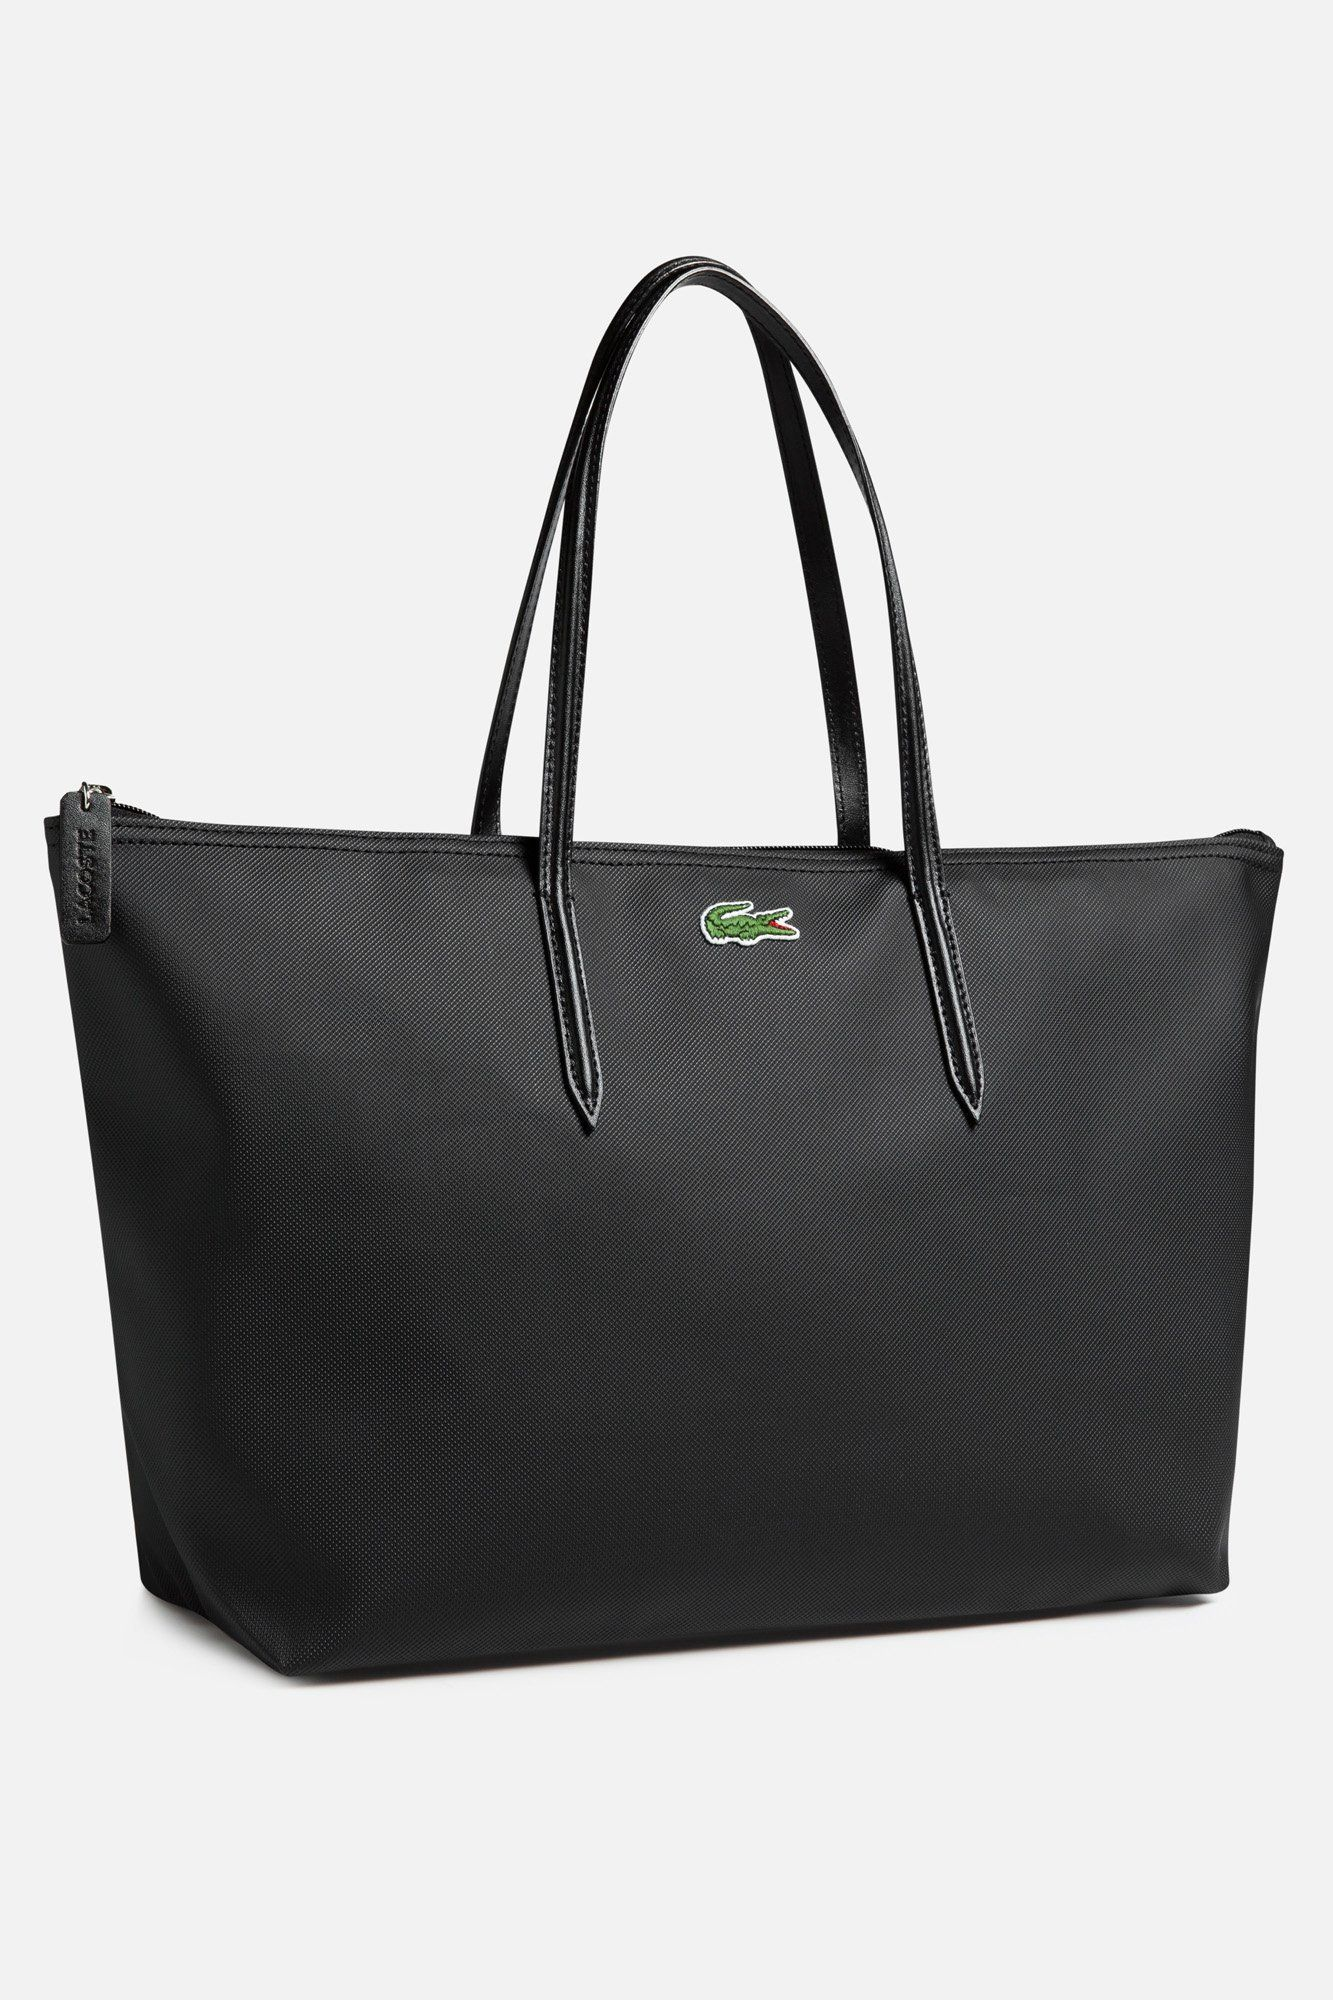 103607bc706 Lacoste L.12.12 Concept Large Horizontal Tote : Bags & Wallets ...